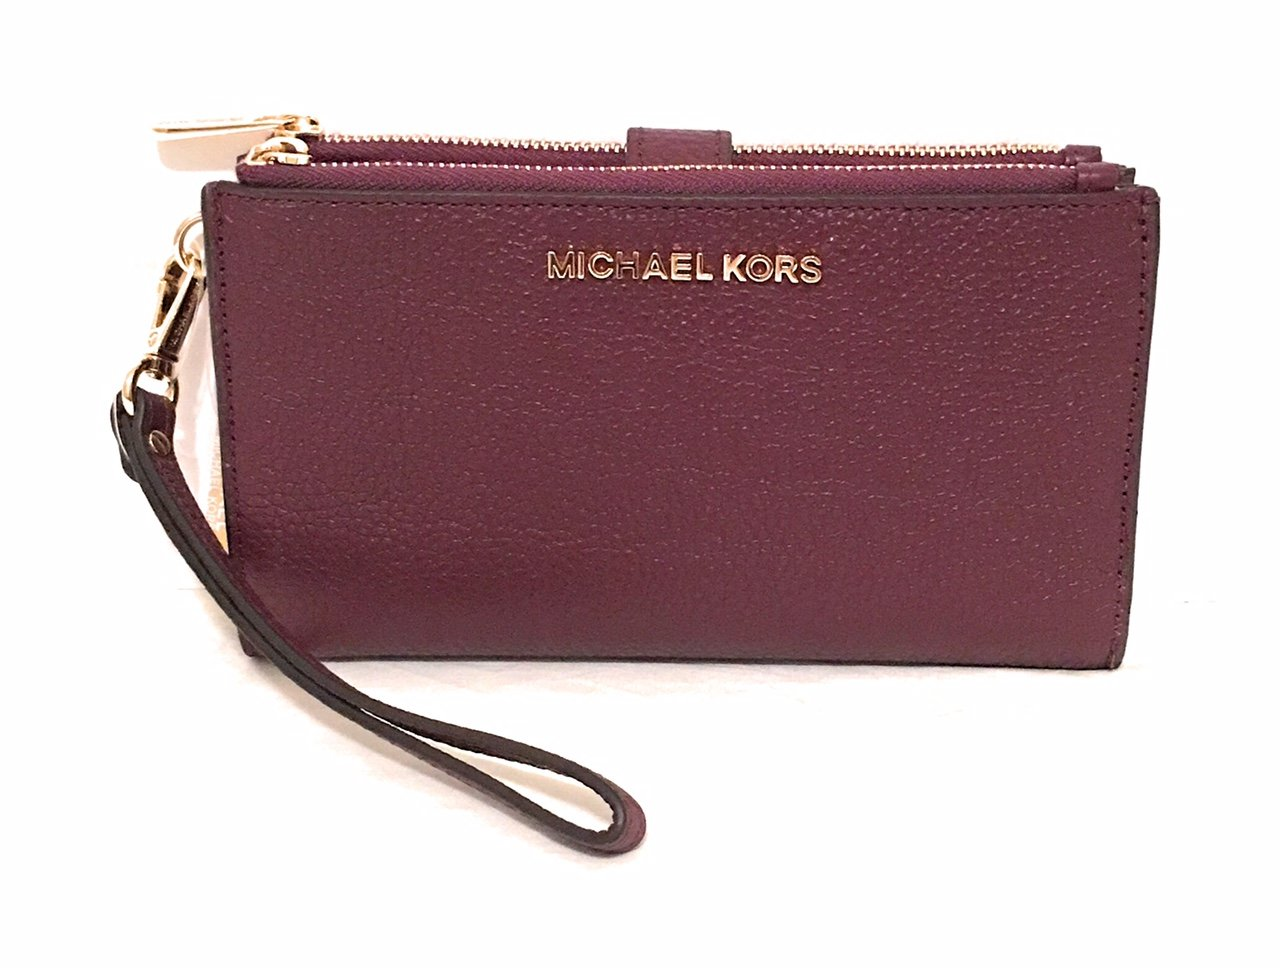 Michael Kors Jet Set Travel double Zip Wristlet (Plum)